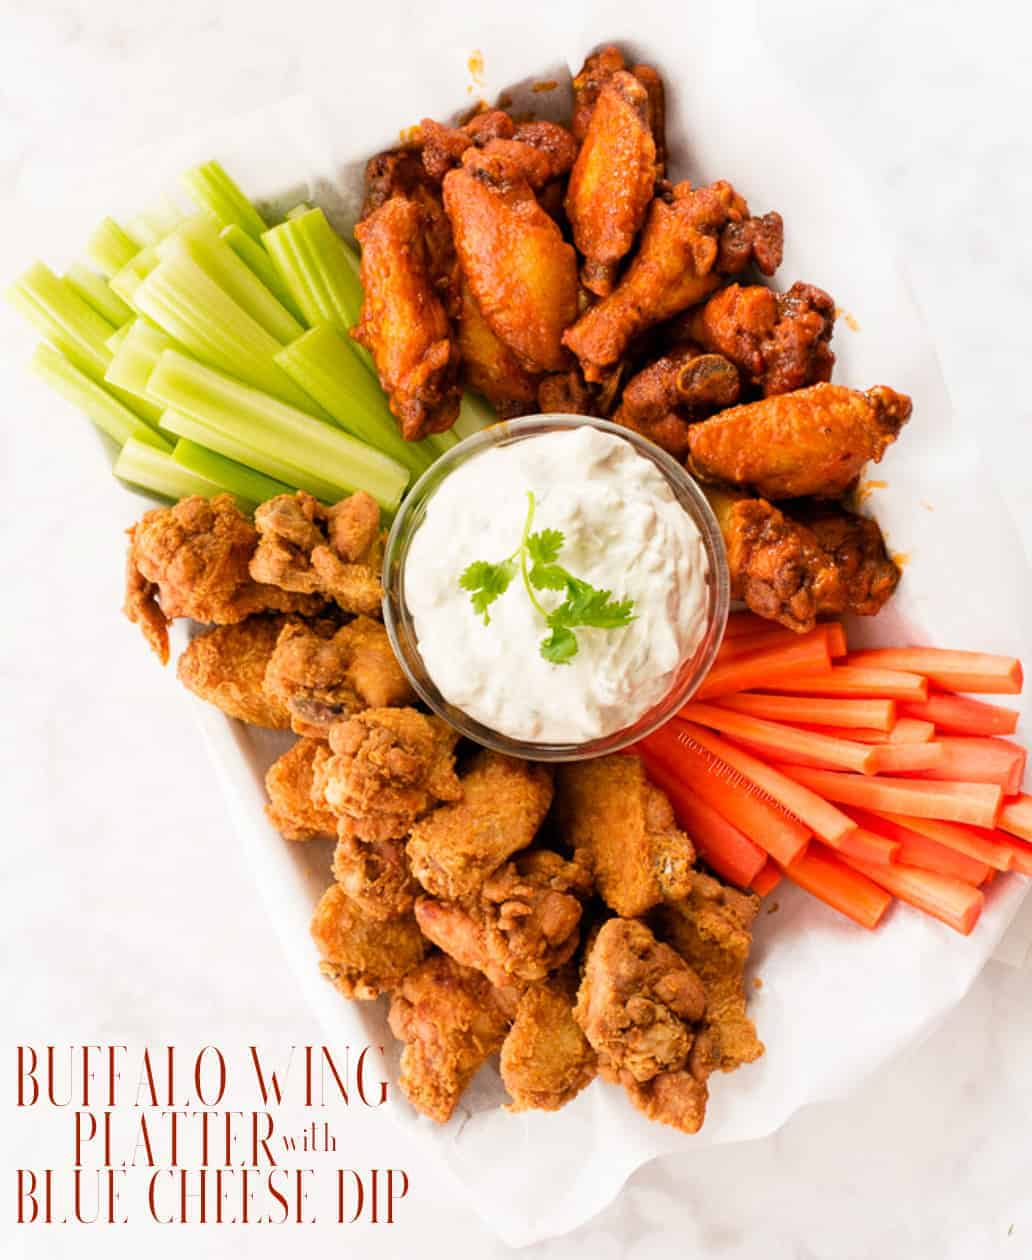 This Buffalo Wing Platter with Blue Cheese Dip holds flavorful fried chicken wings and buffalo wings and comes complete with a made from scratch, sour cream and buttermilk-based blue cheese dipping sauce. #gameday #buffalowings #chickenwings #bluecheesedip #bluecheese #friedchicken #partyfood #wings #wingsandbeer #gamedayfare #gamedayrecipes #biggamesnacks #snackfood #partyfoodrecipes #chickenwingsanddip #wingplatter #buffalowingplatter via @ediblesense